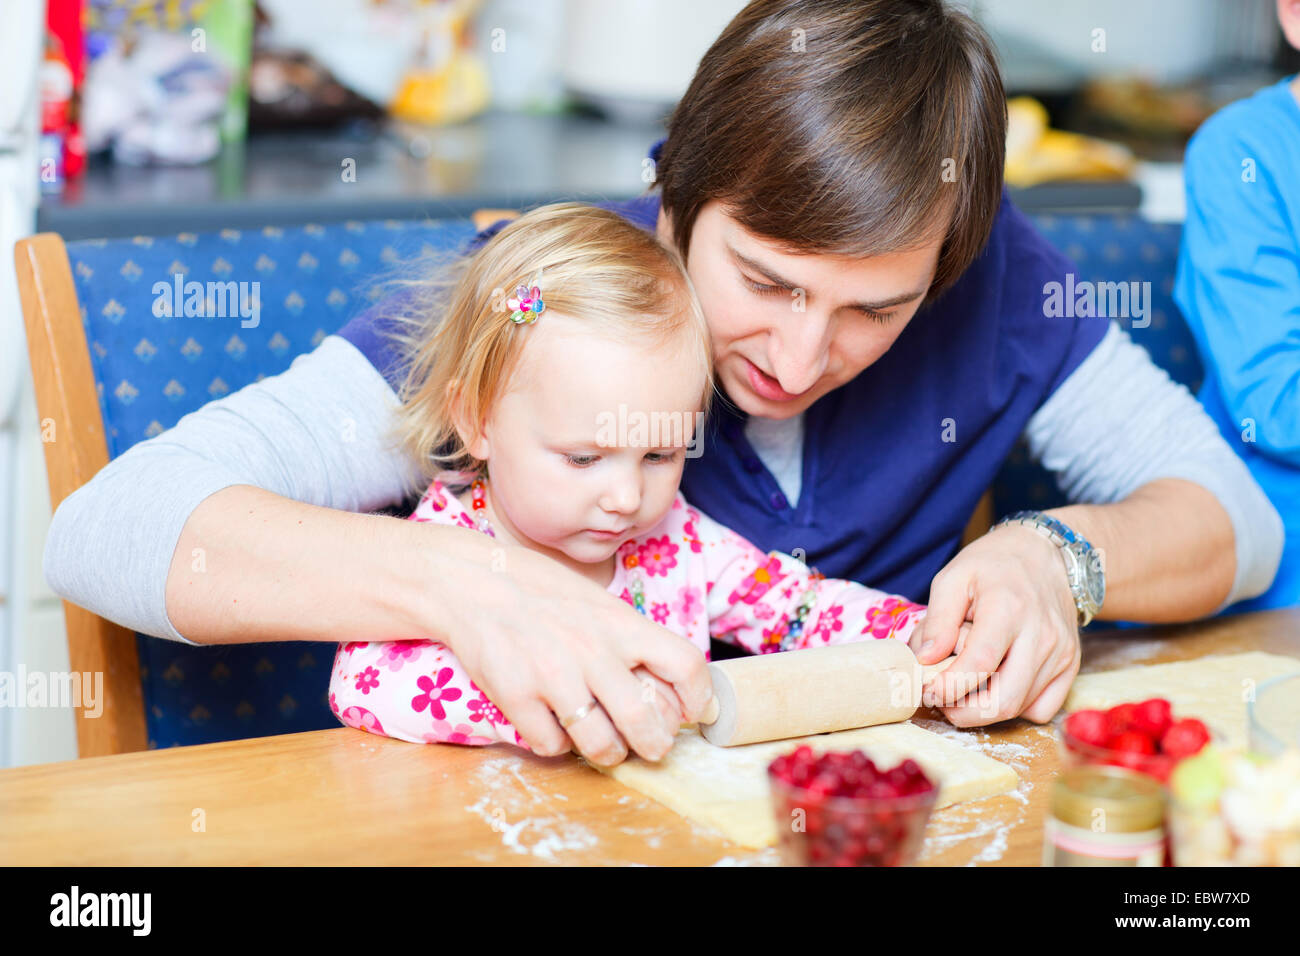 father baking biscuits with his little daughter - Stock Image